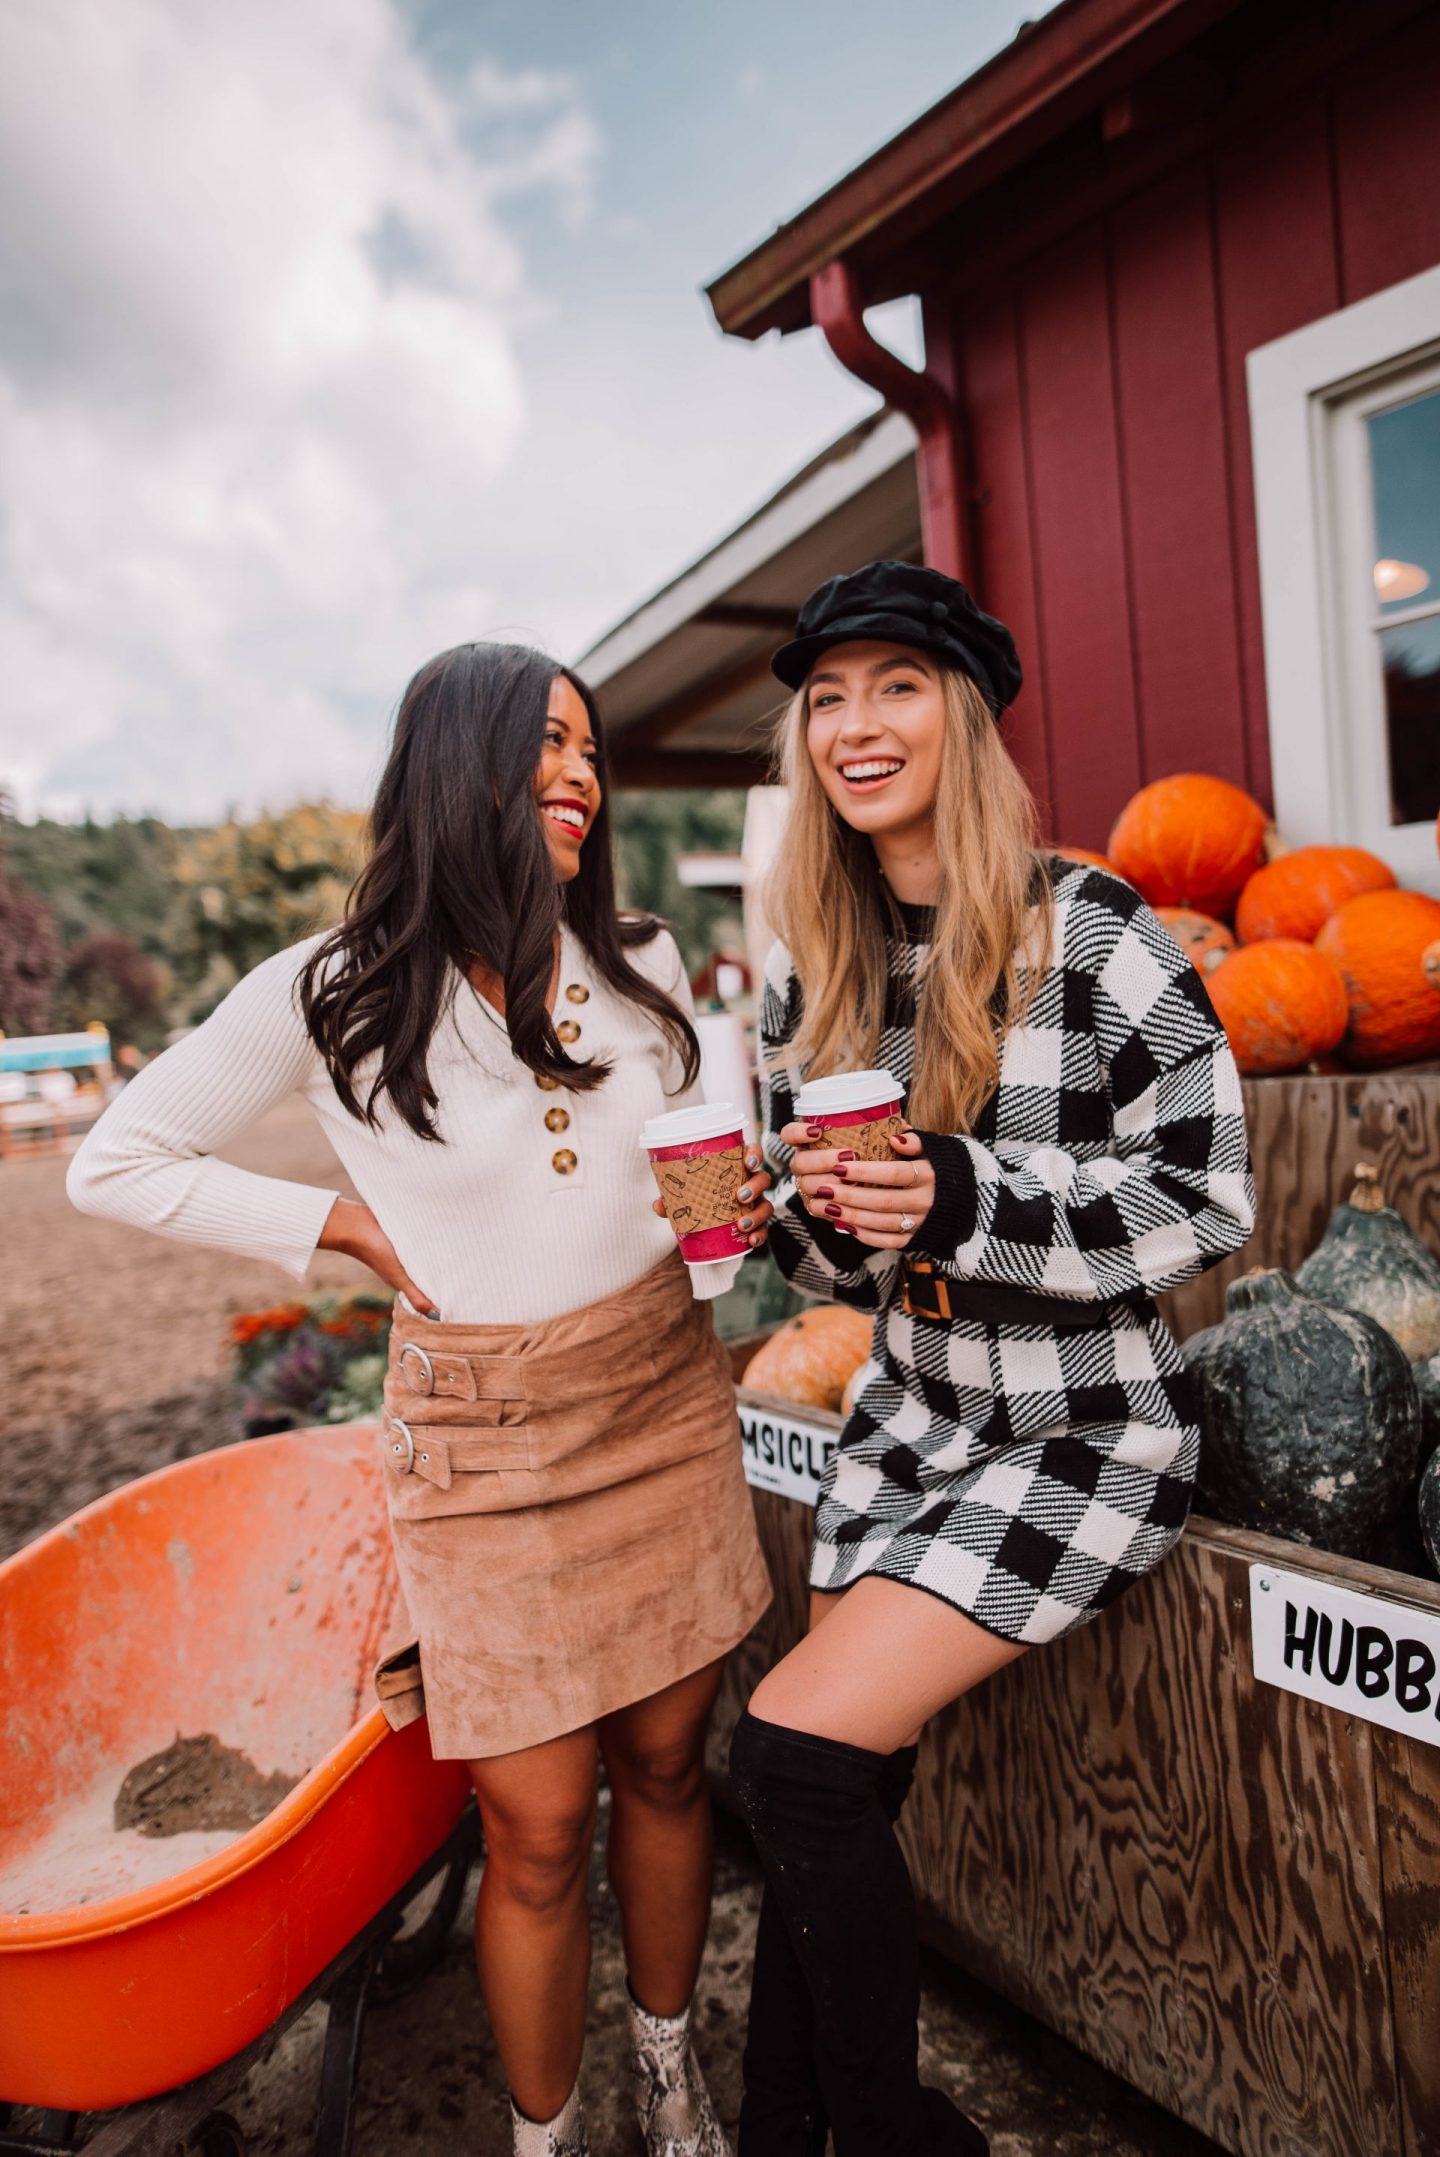 hot cider photo ideas - grab hot cider at the pumpkin patch - autumn photo ideas with your best friends - best friend photos - - friend Instagram posing ideas for fall - autumn photos with friends - copyright @emmasedition - www.emmasedition.com